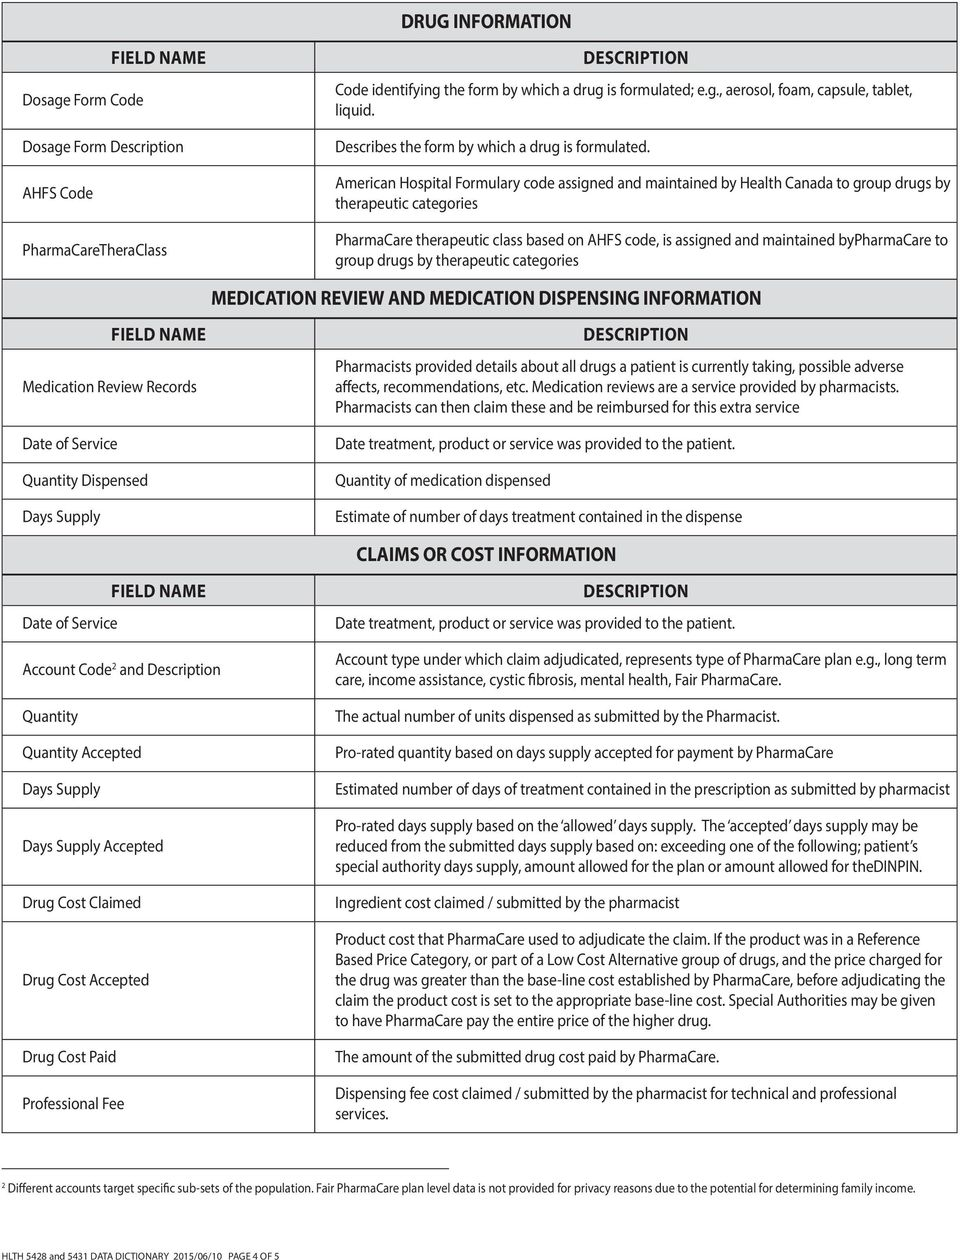 American Hospital Formulary code assigned and maintained by Health Canada to group drugs by therapeutic categories PharmaCare therapeutic class based on AHFS code, is assigned and maintained